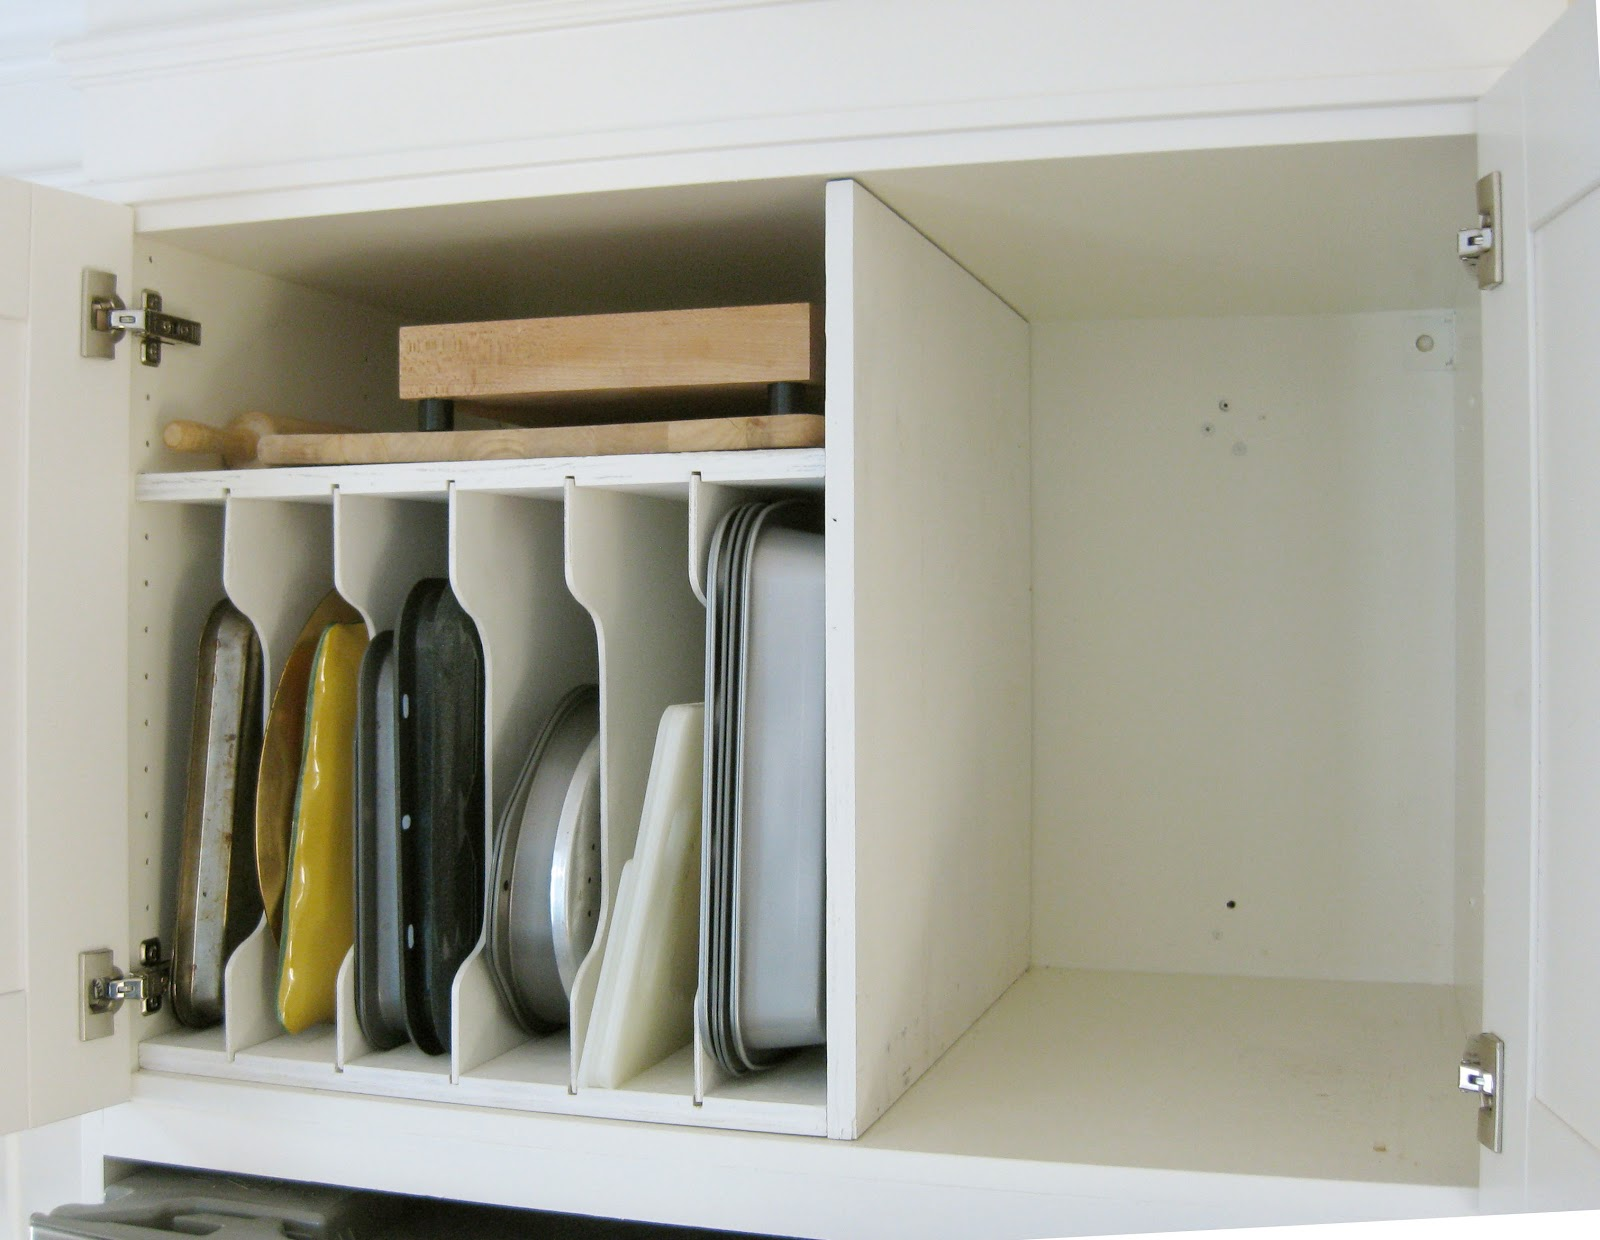 Kitchen Organization How To Install Pull Out Drawers In